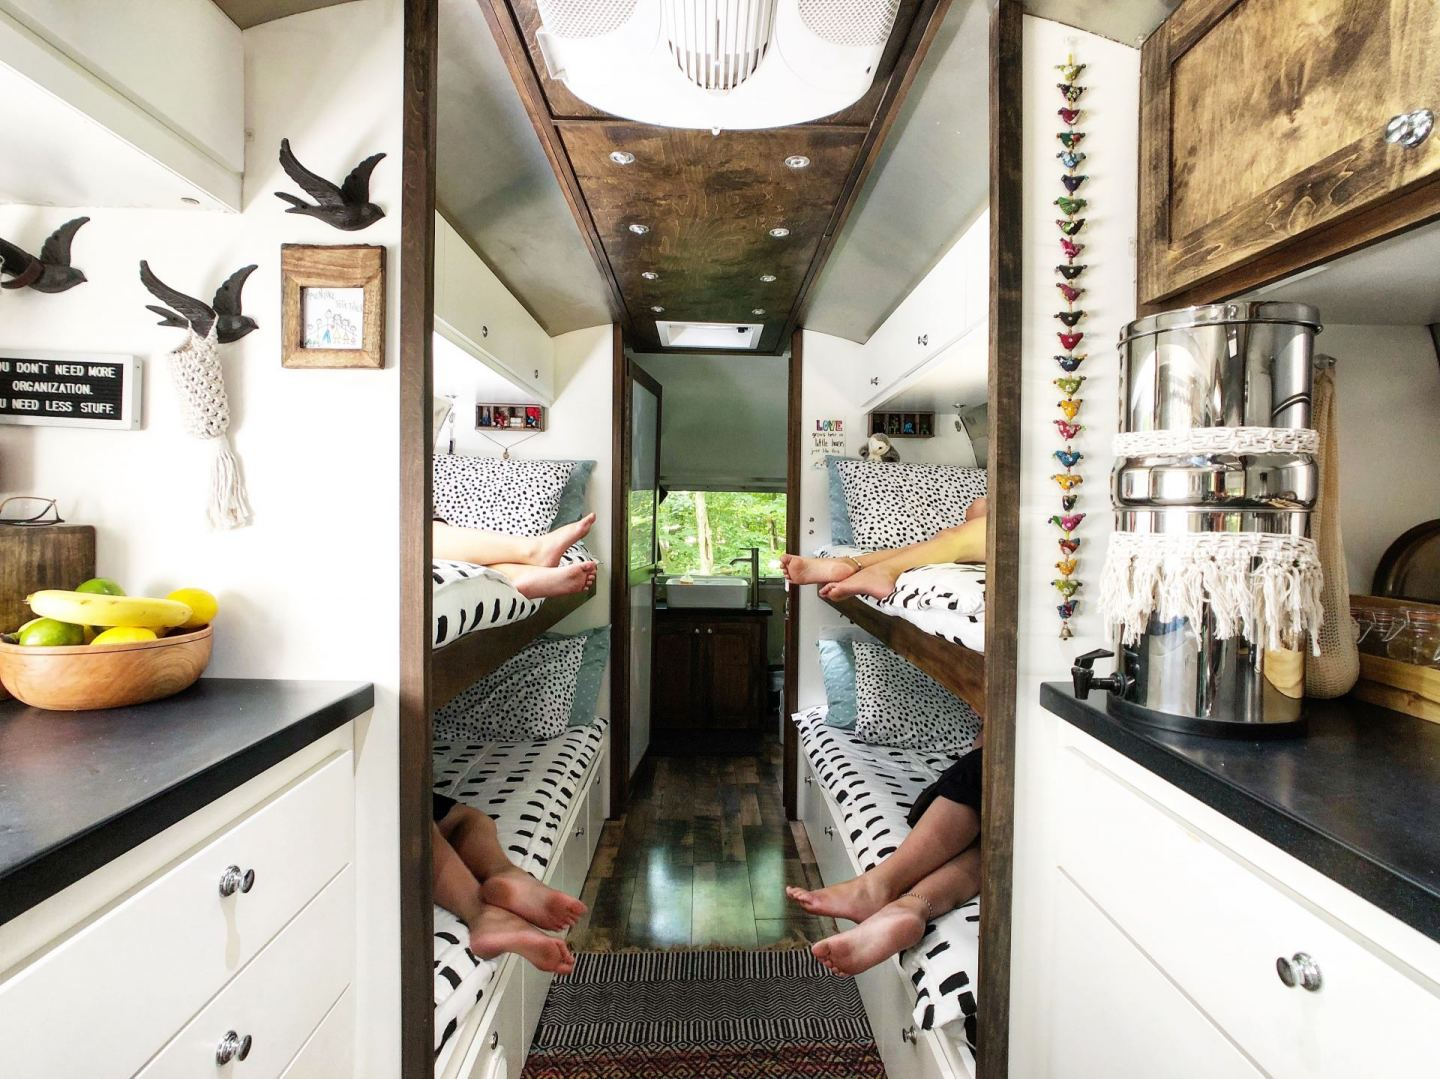 Family of 6 Living in a Renovated Vintage Airstream